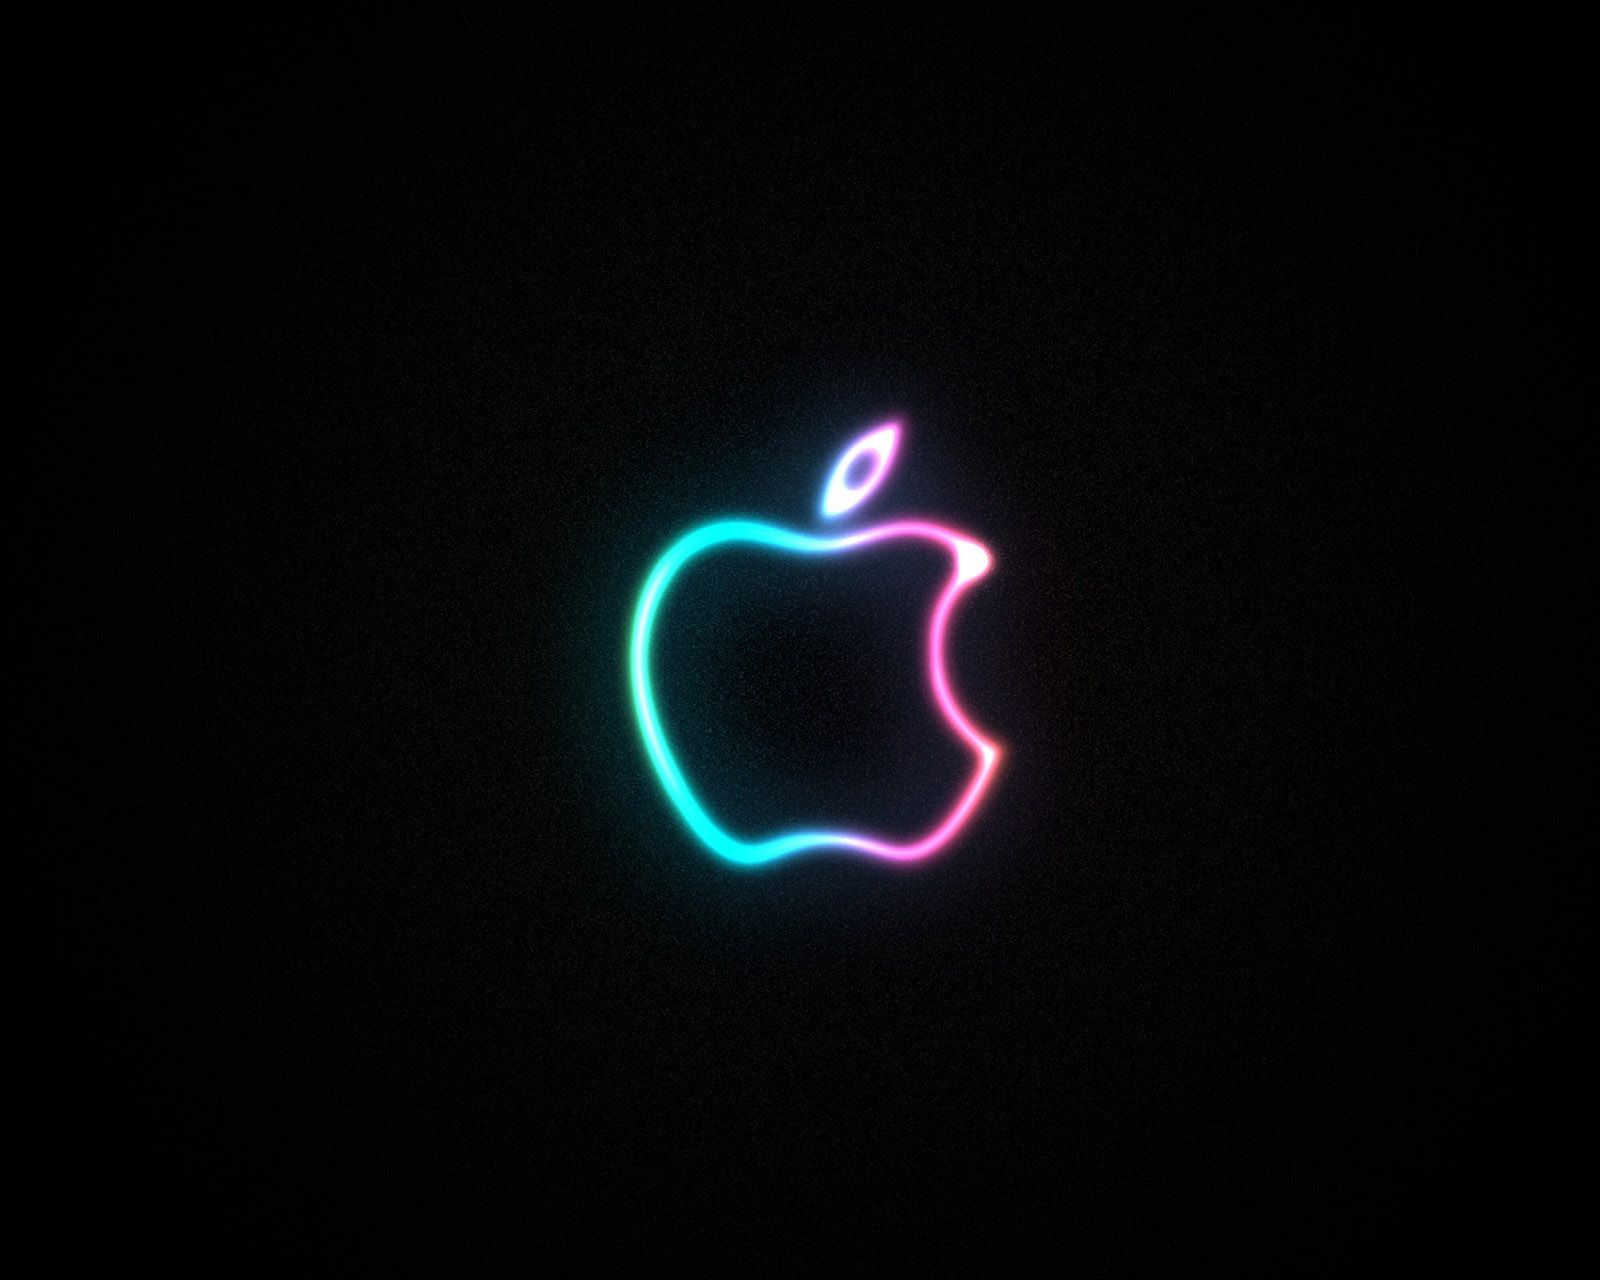 Apple Logo Wallpaper 15 Wallpaper Background Hd on